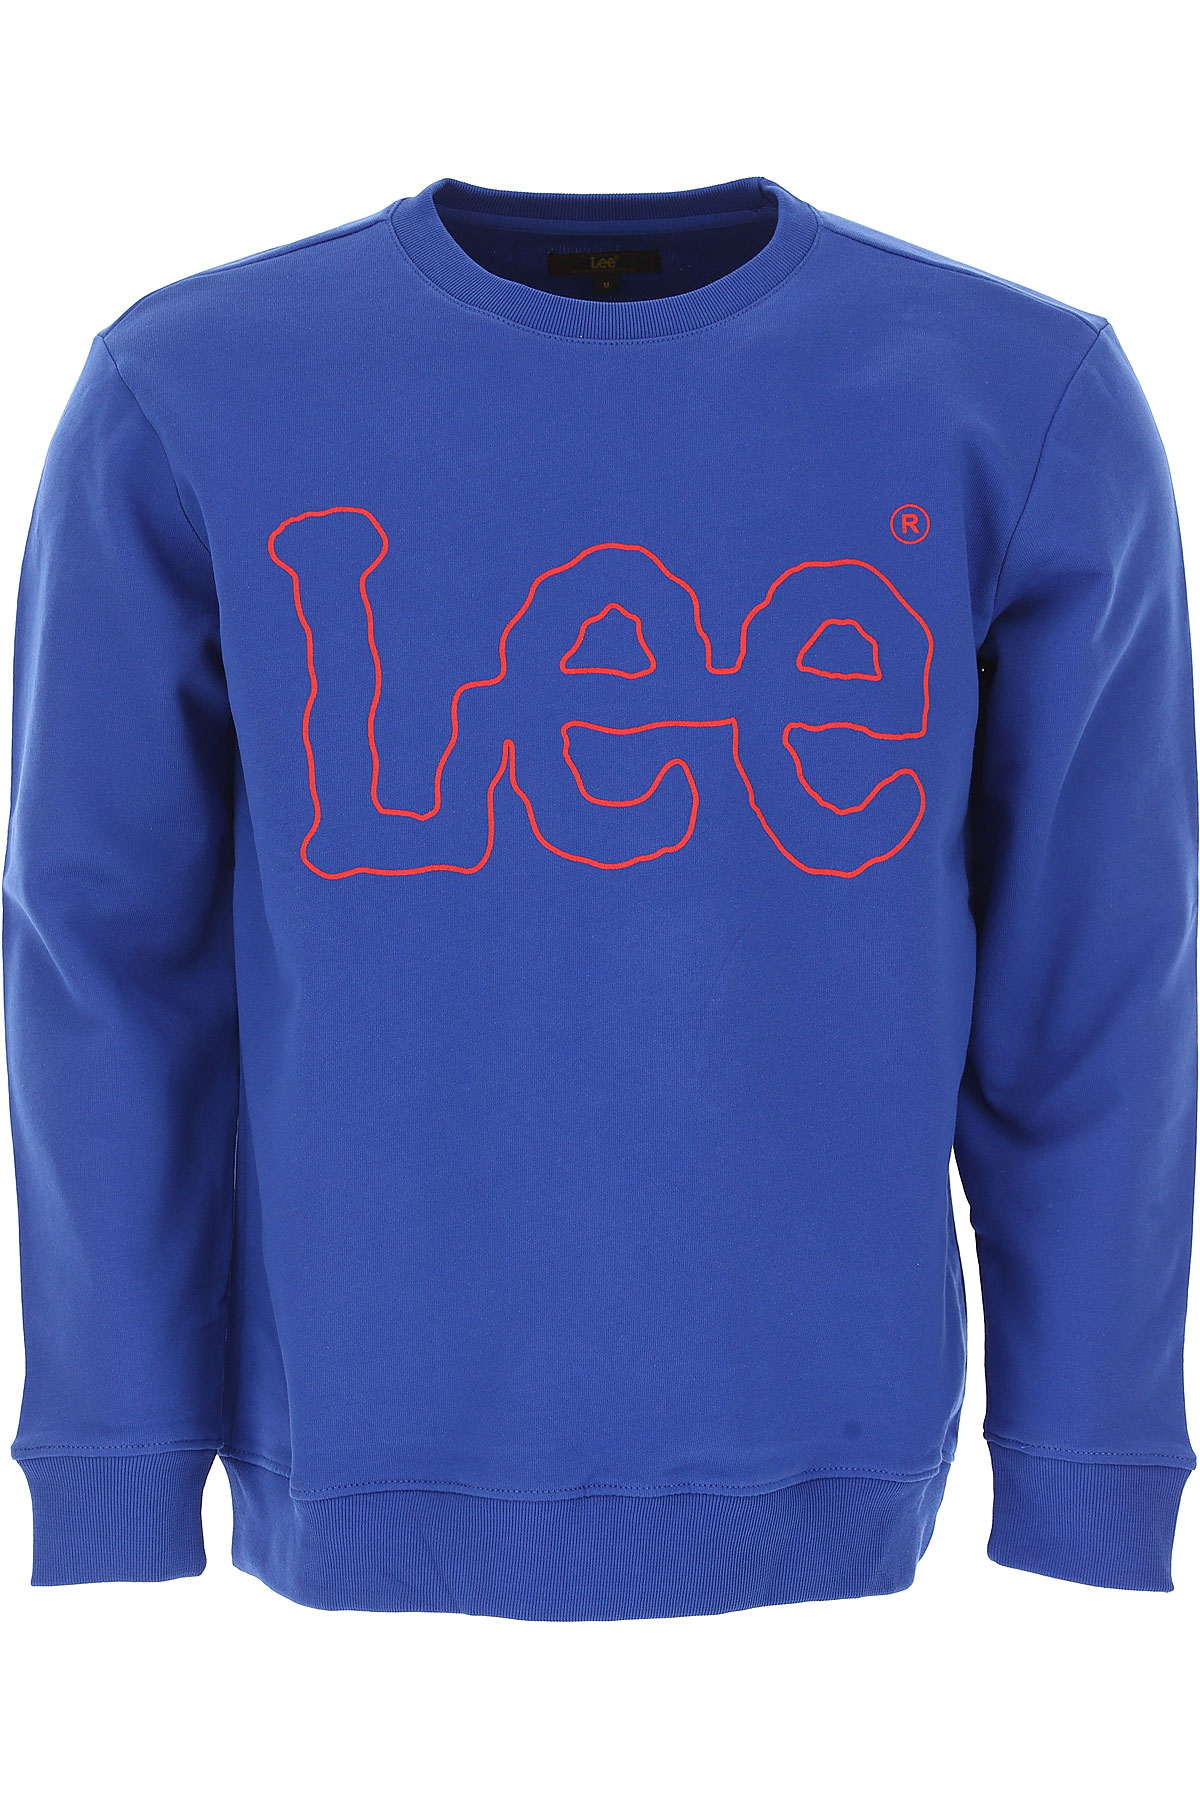 Lee Sweatshirt for Men, Bluette, Cotton, 2017, L M S XL XXL USA-440047